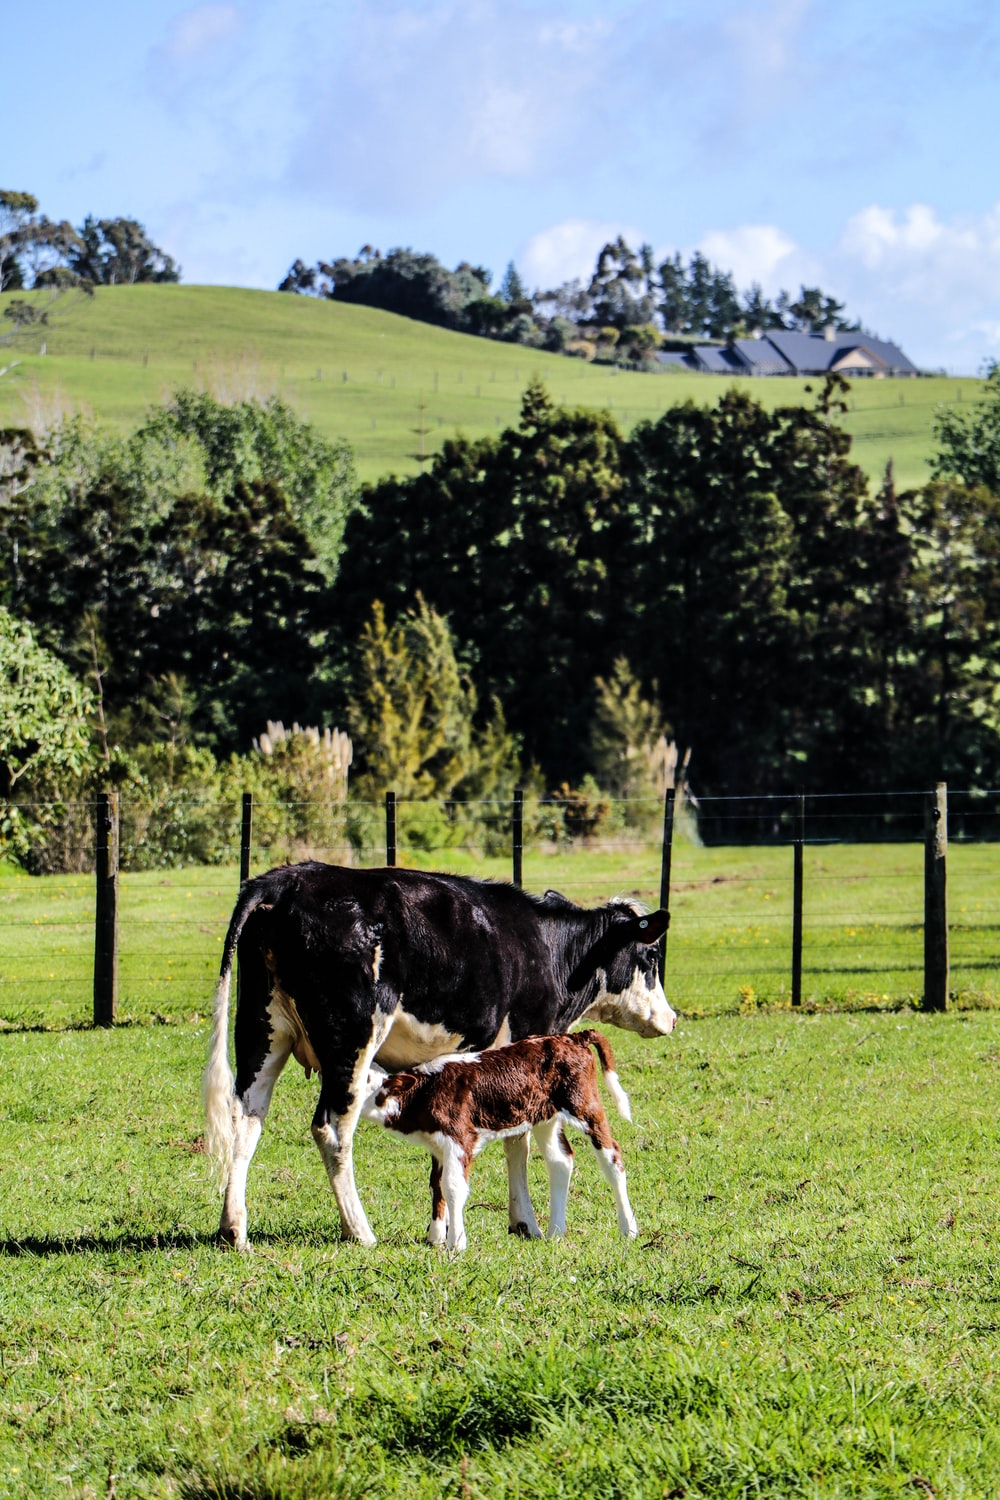 black and white cow with calf